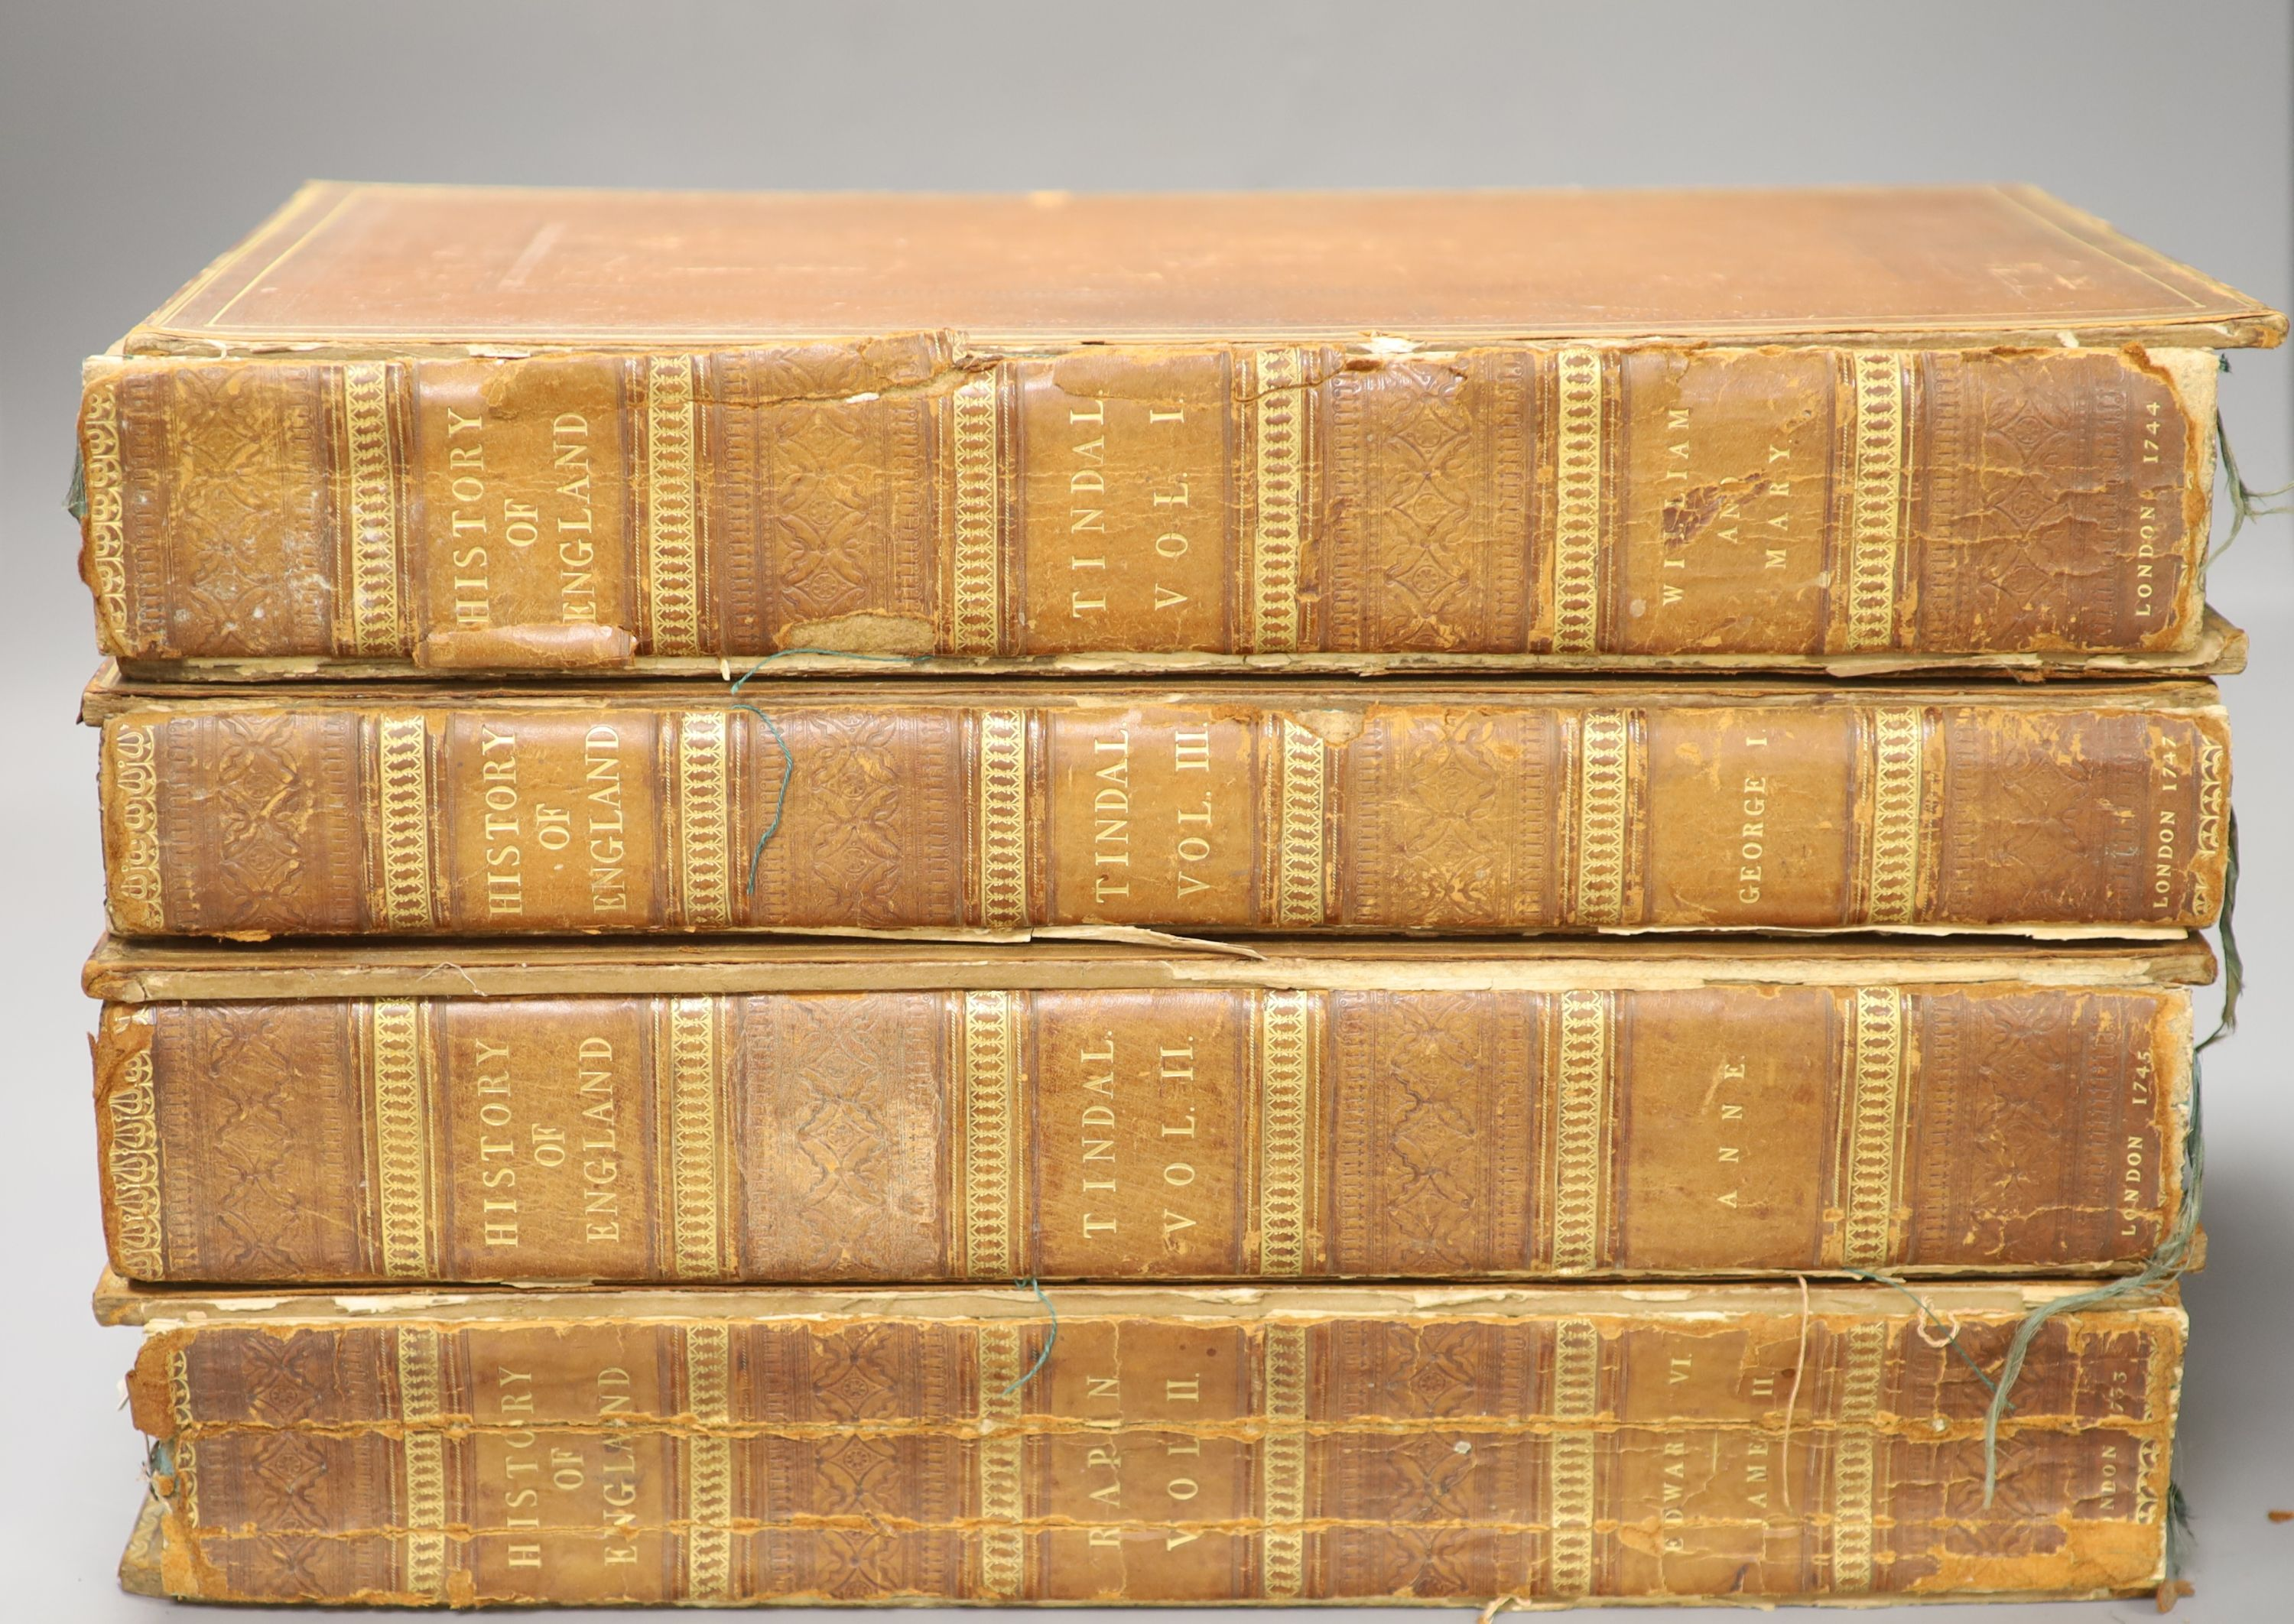 History of England, Tindal 4 vols, quarto, plates removed, boards detached